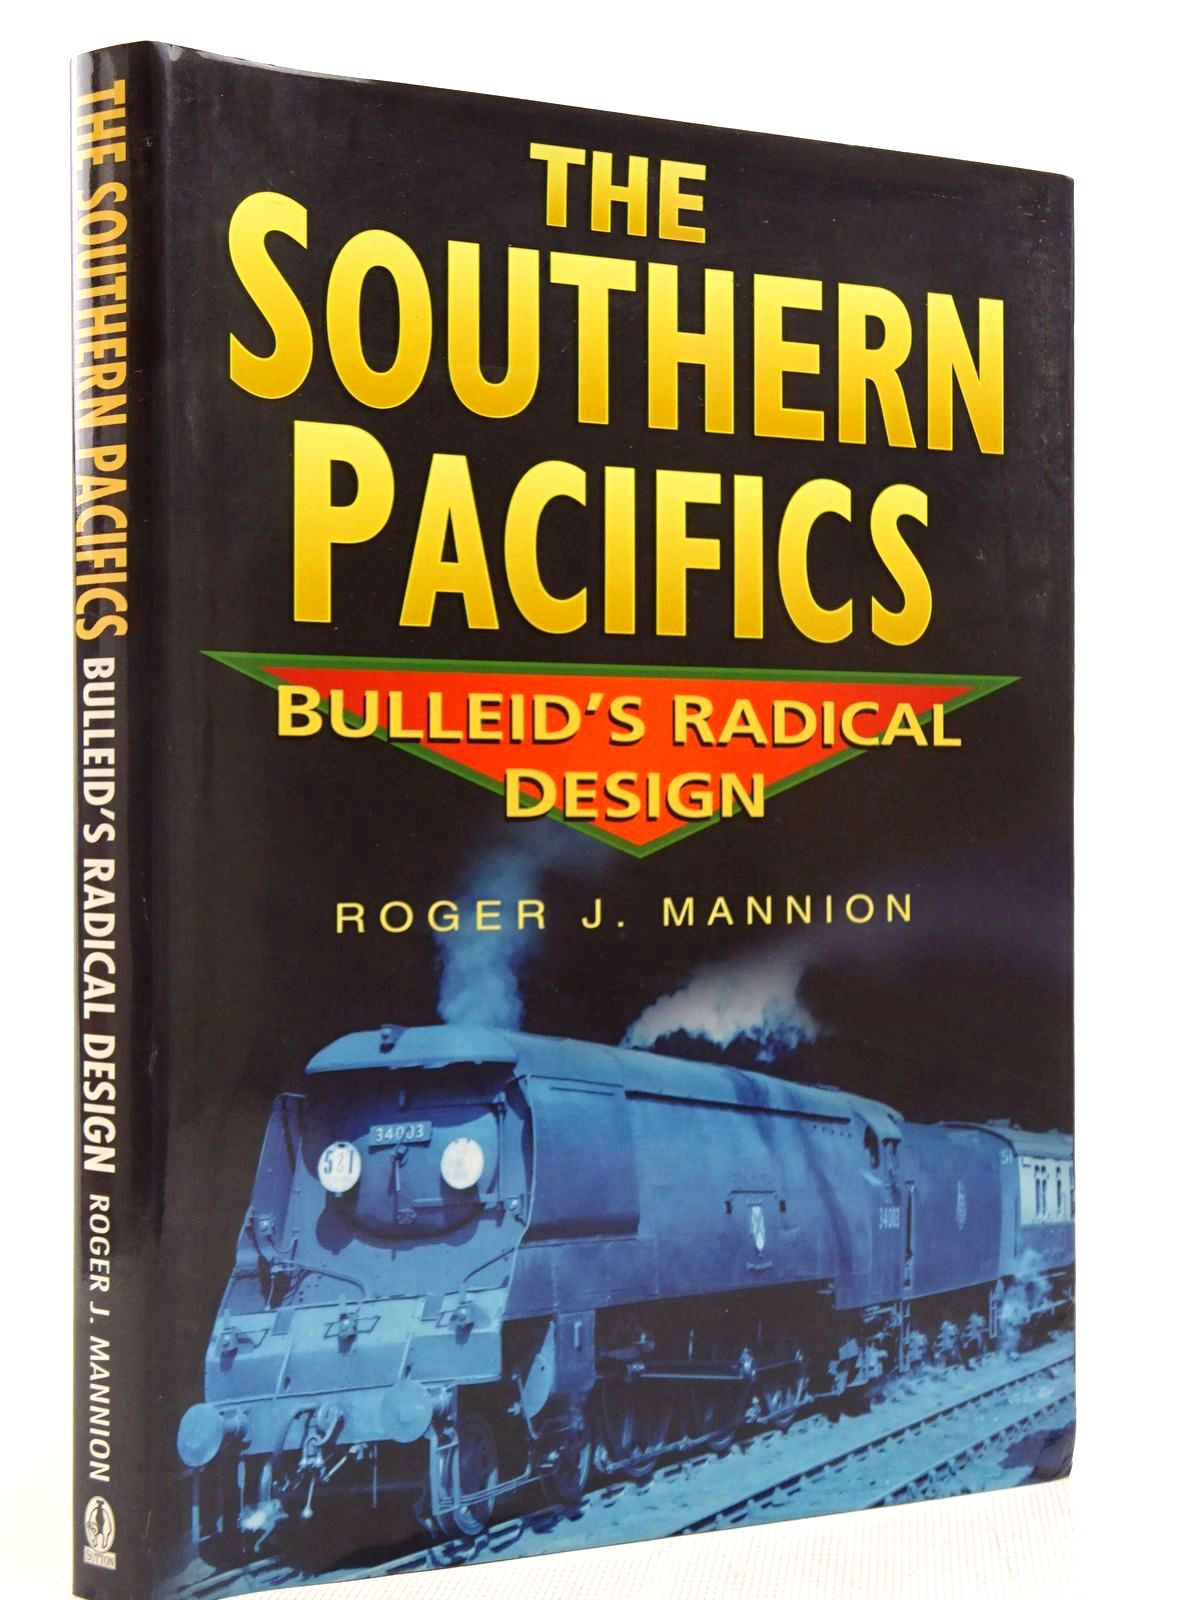 Photo of THE SOUTHERN PACIFICS BULLEID'S RADICAL DESIGN written by Mannion, Roger J. published by Sutton Publishing (STOCK CODE: 2128821)  for sale by Stella & Rose's Books